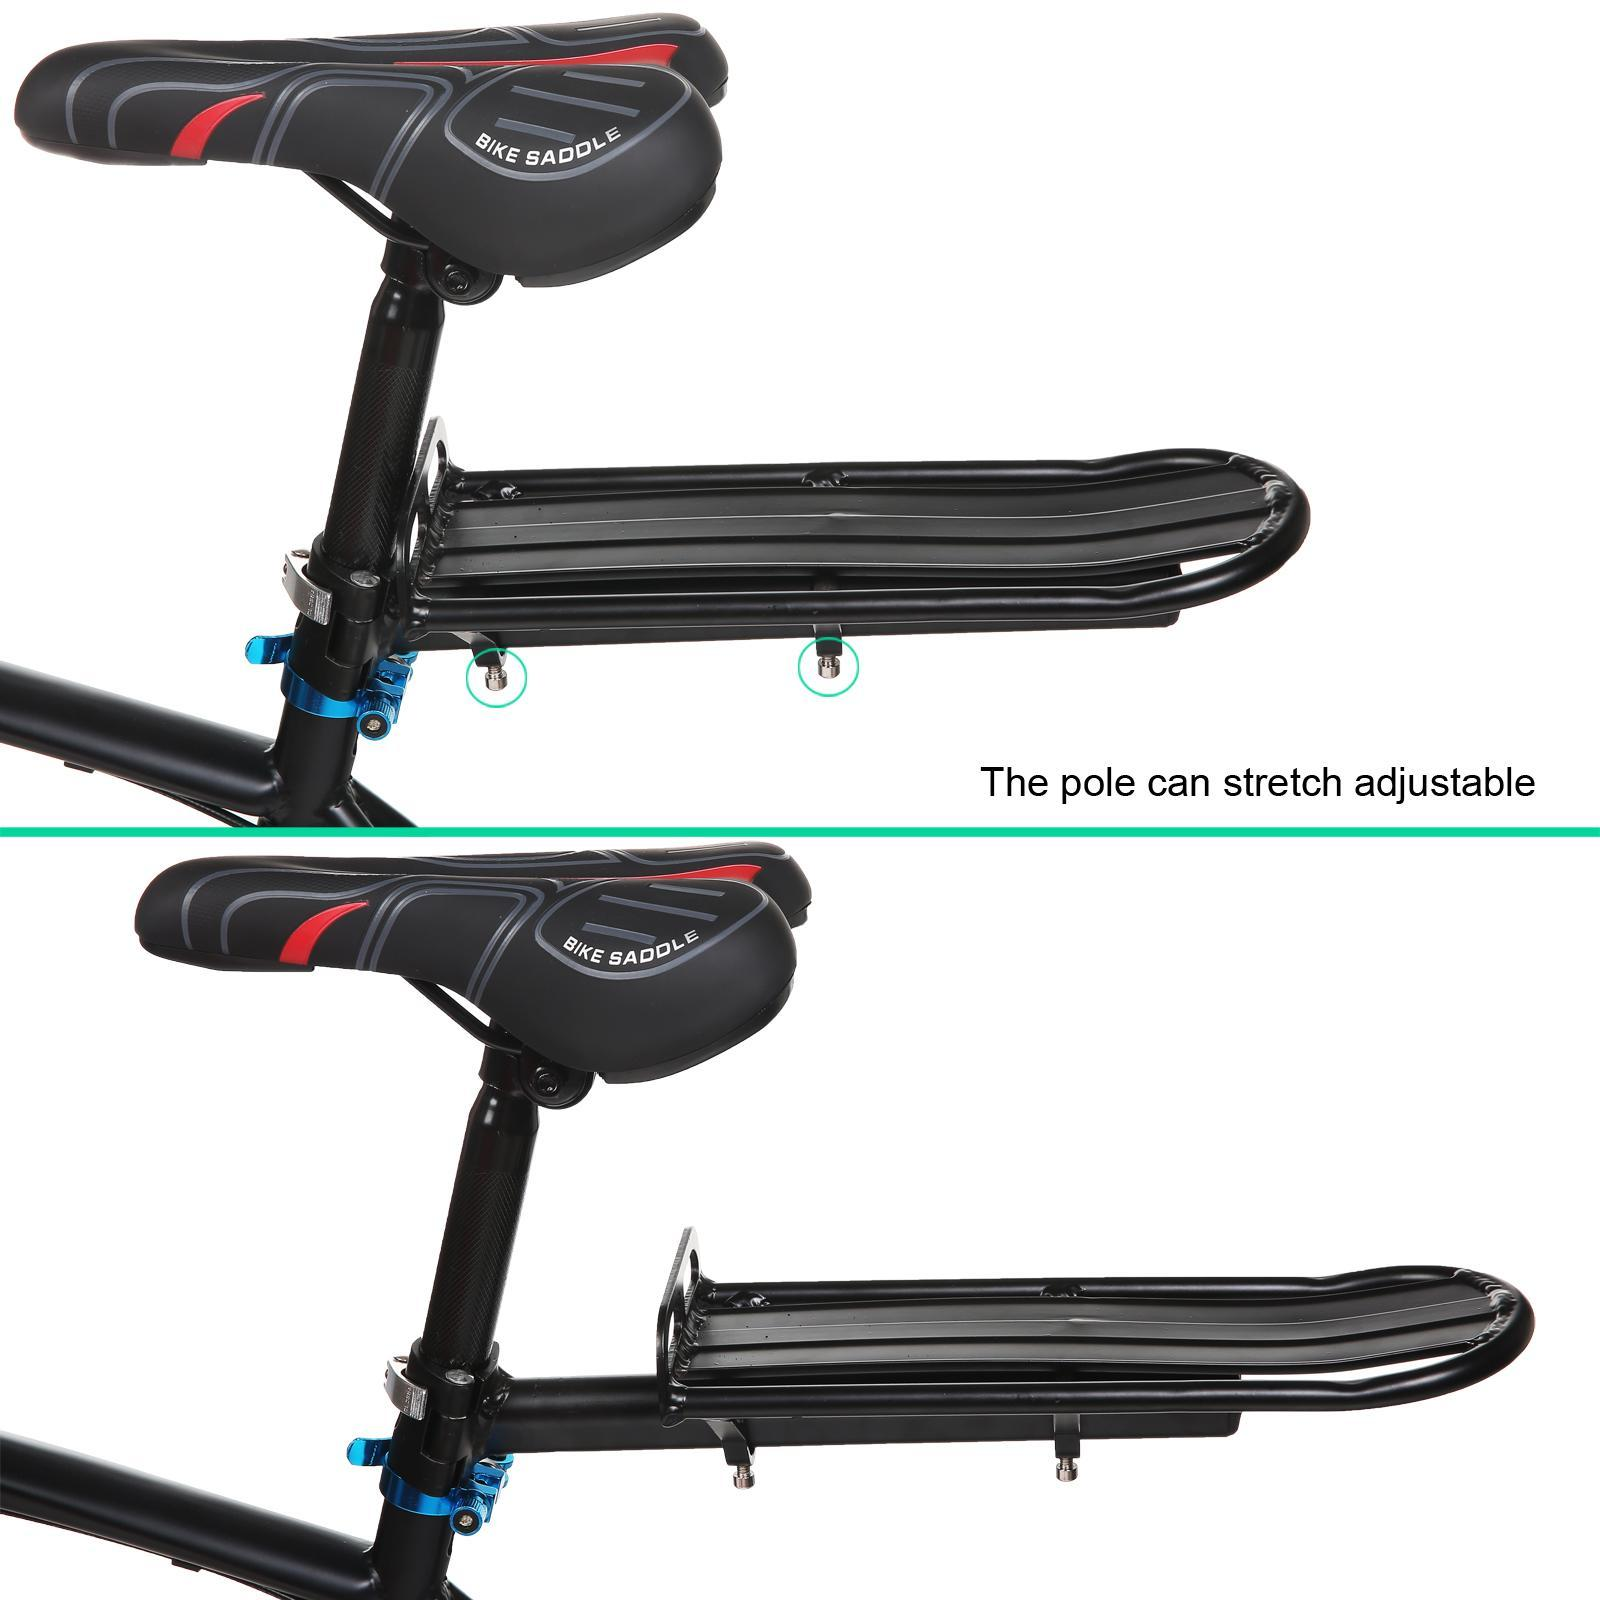 "Bike Bicycle Post 14.6 x 4.7"" Black Rear Carrier Rack Seat  For Mountain AMZSE"